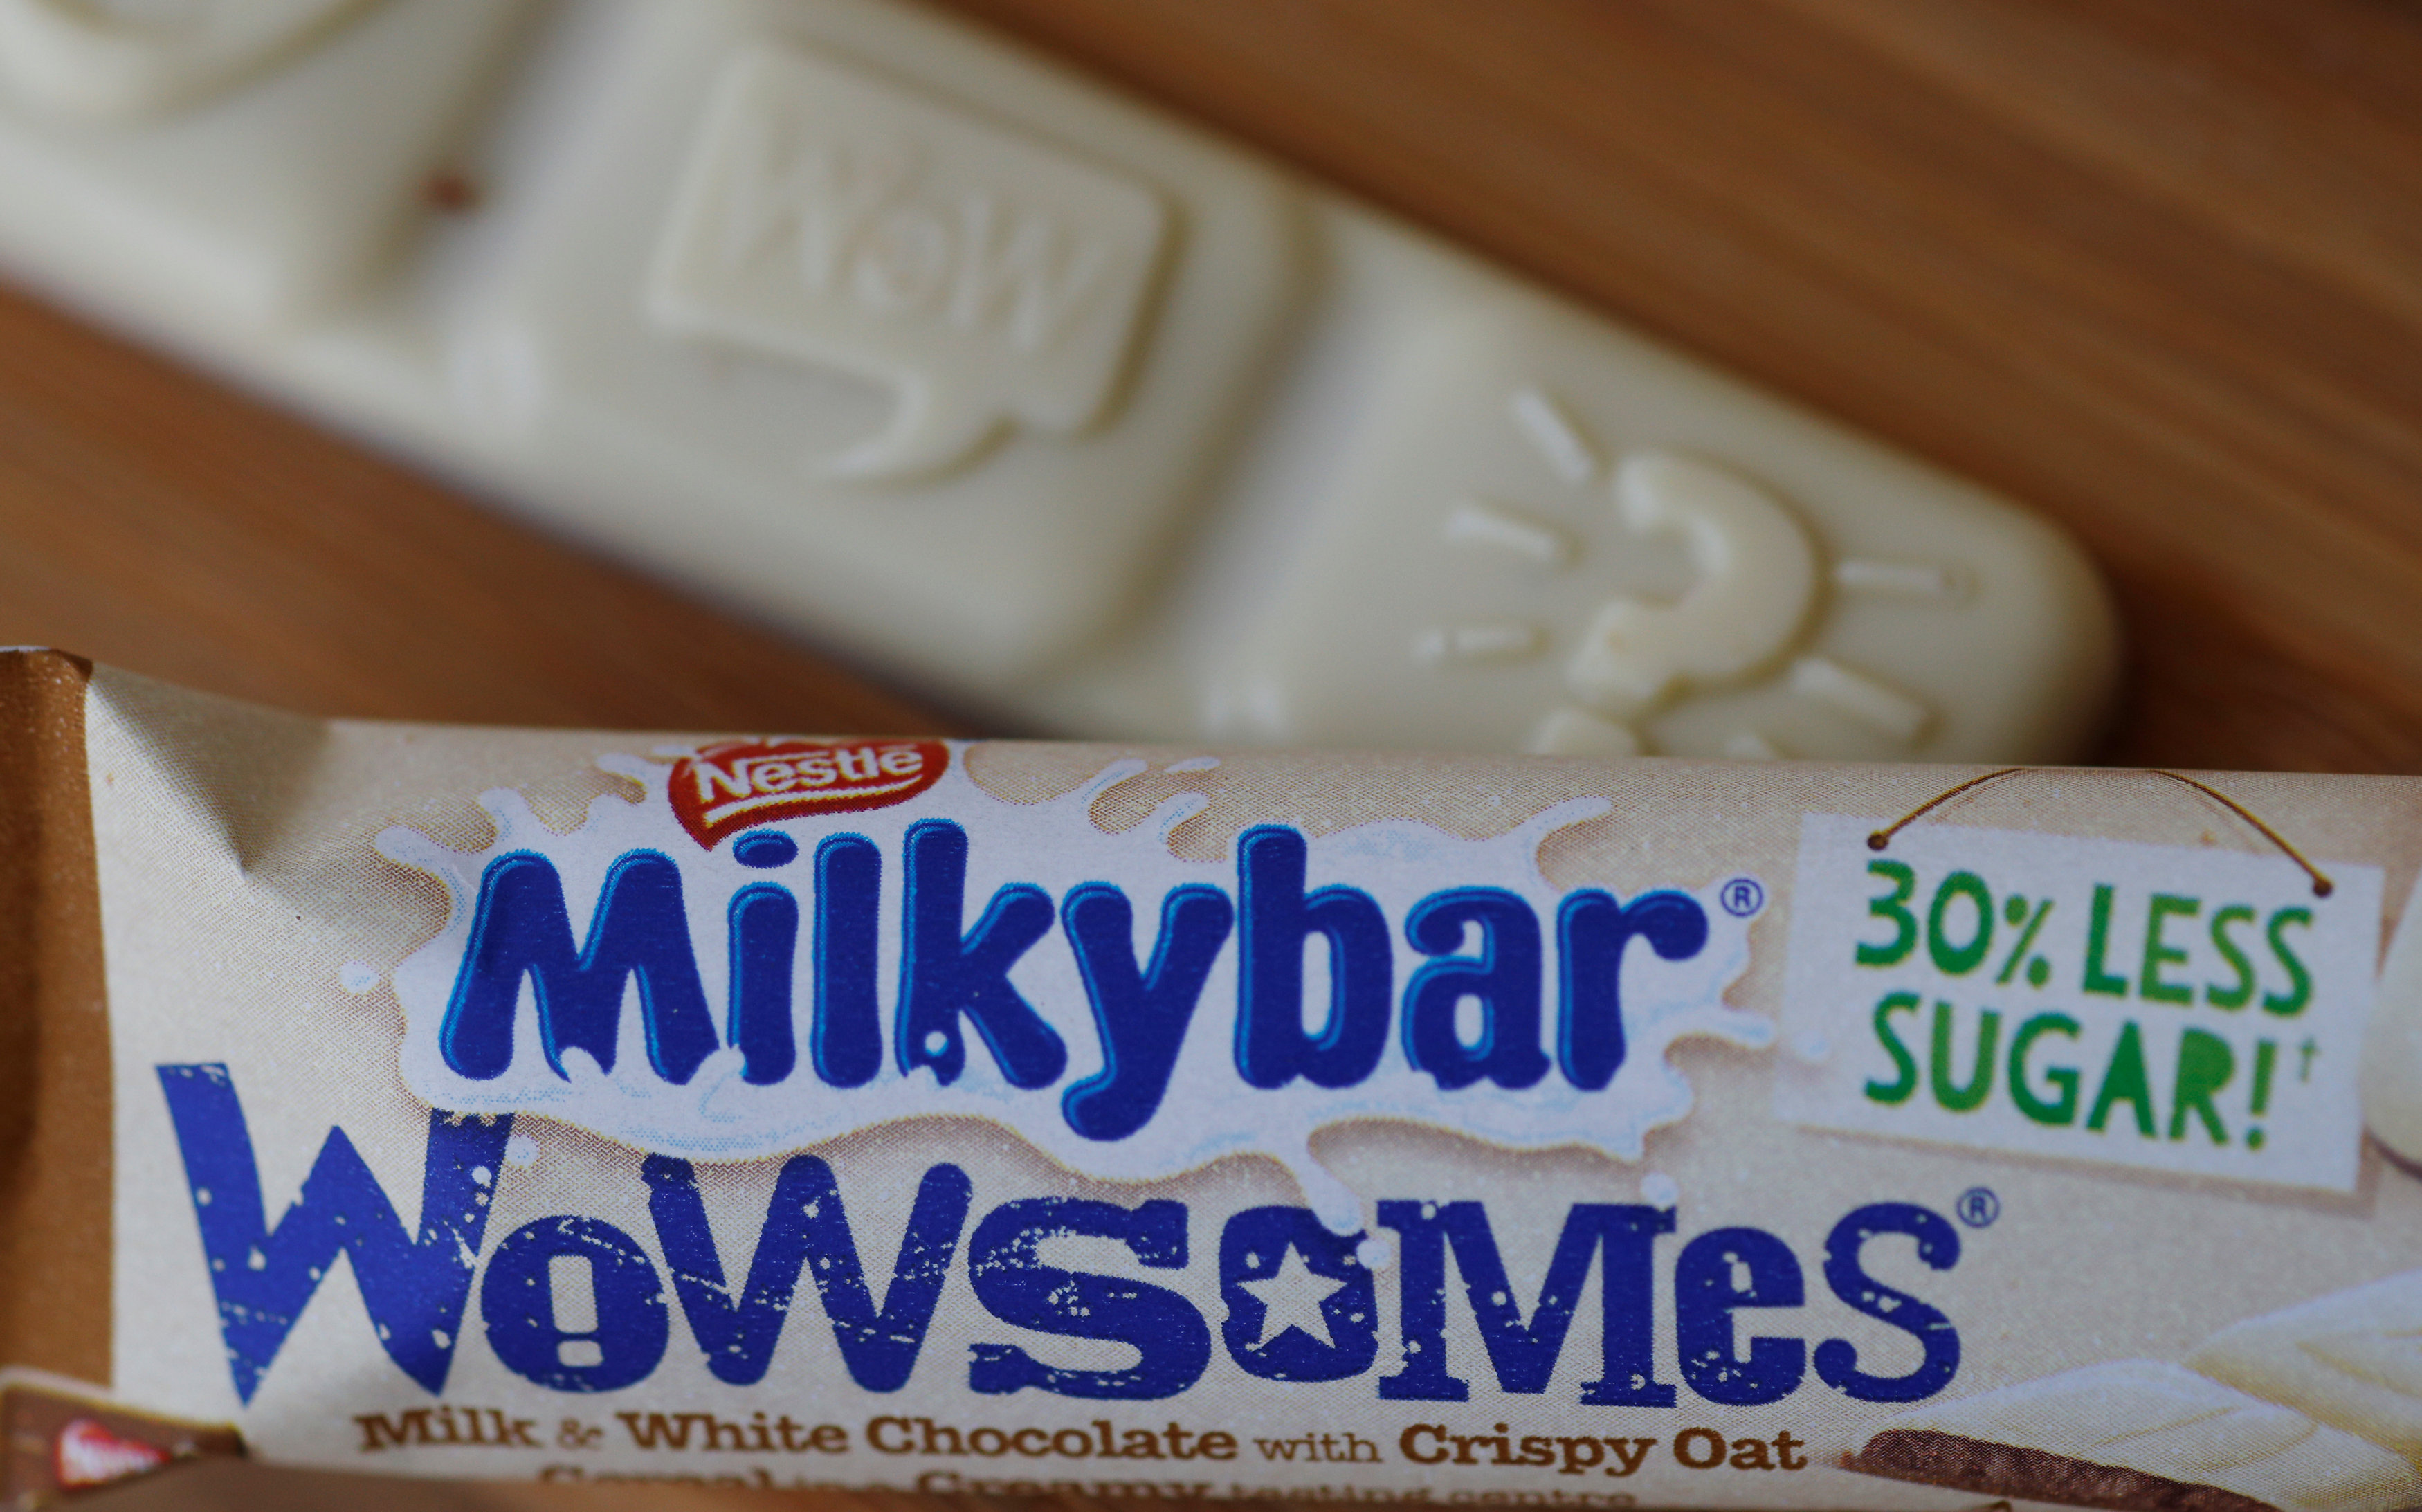 Nestle has launched a new Milkybar which contains 30% less sugar